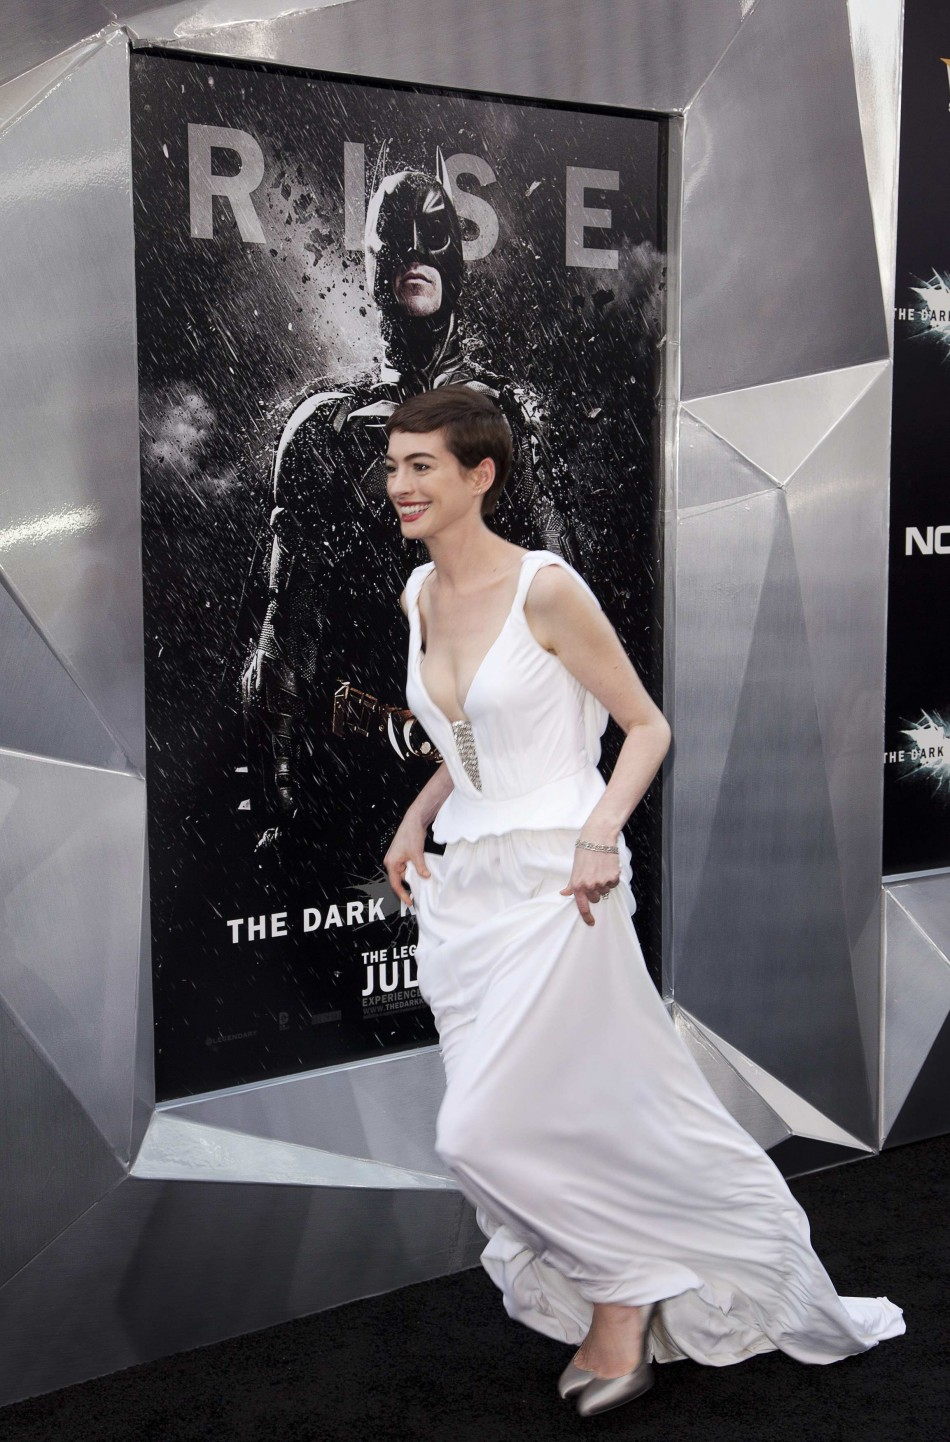 Cast member Anne Hathaway attends the world premiere of the movie quotThe Dark Knight Risesquot in New York